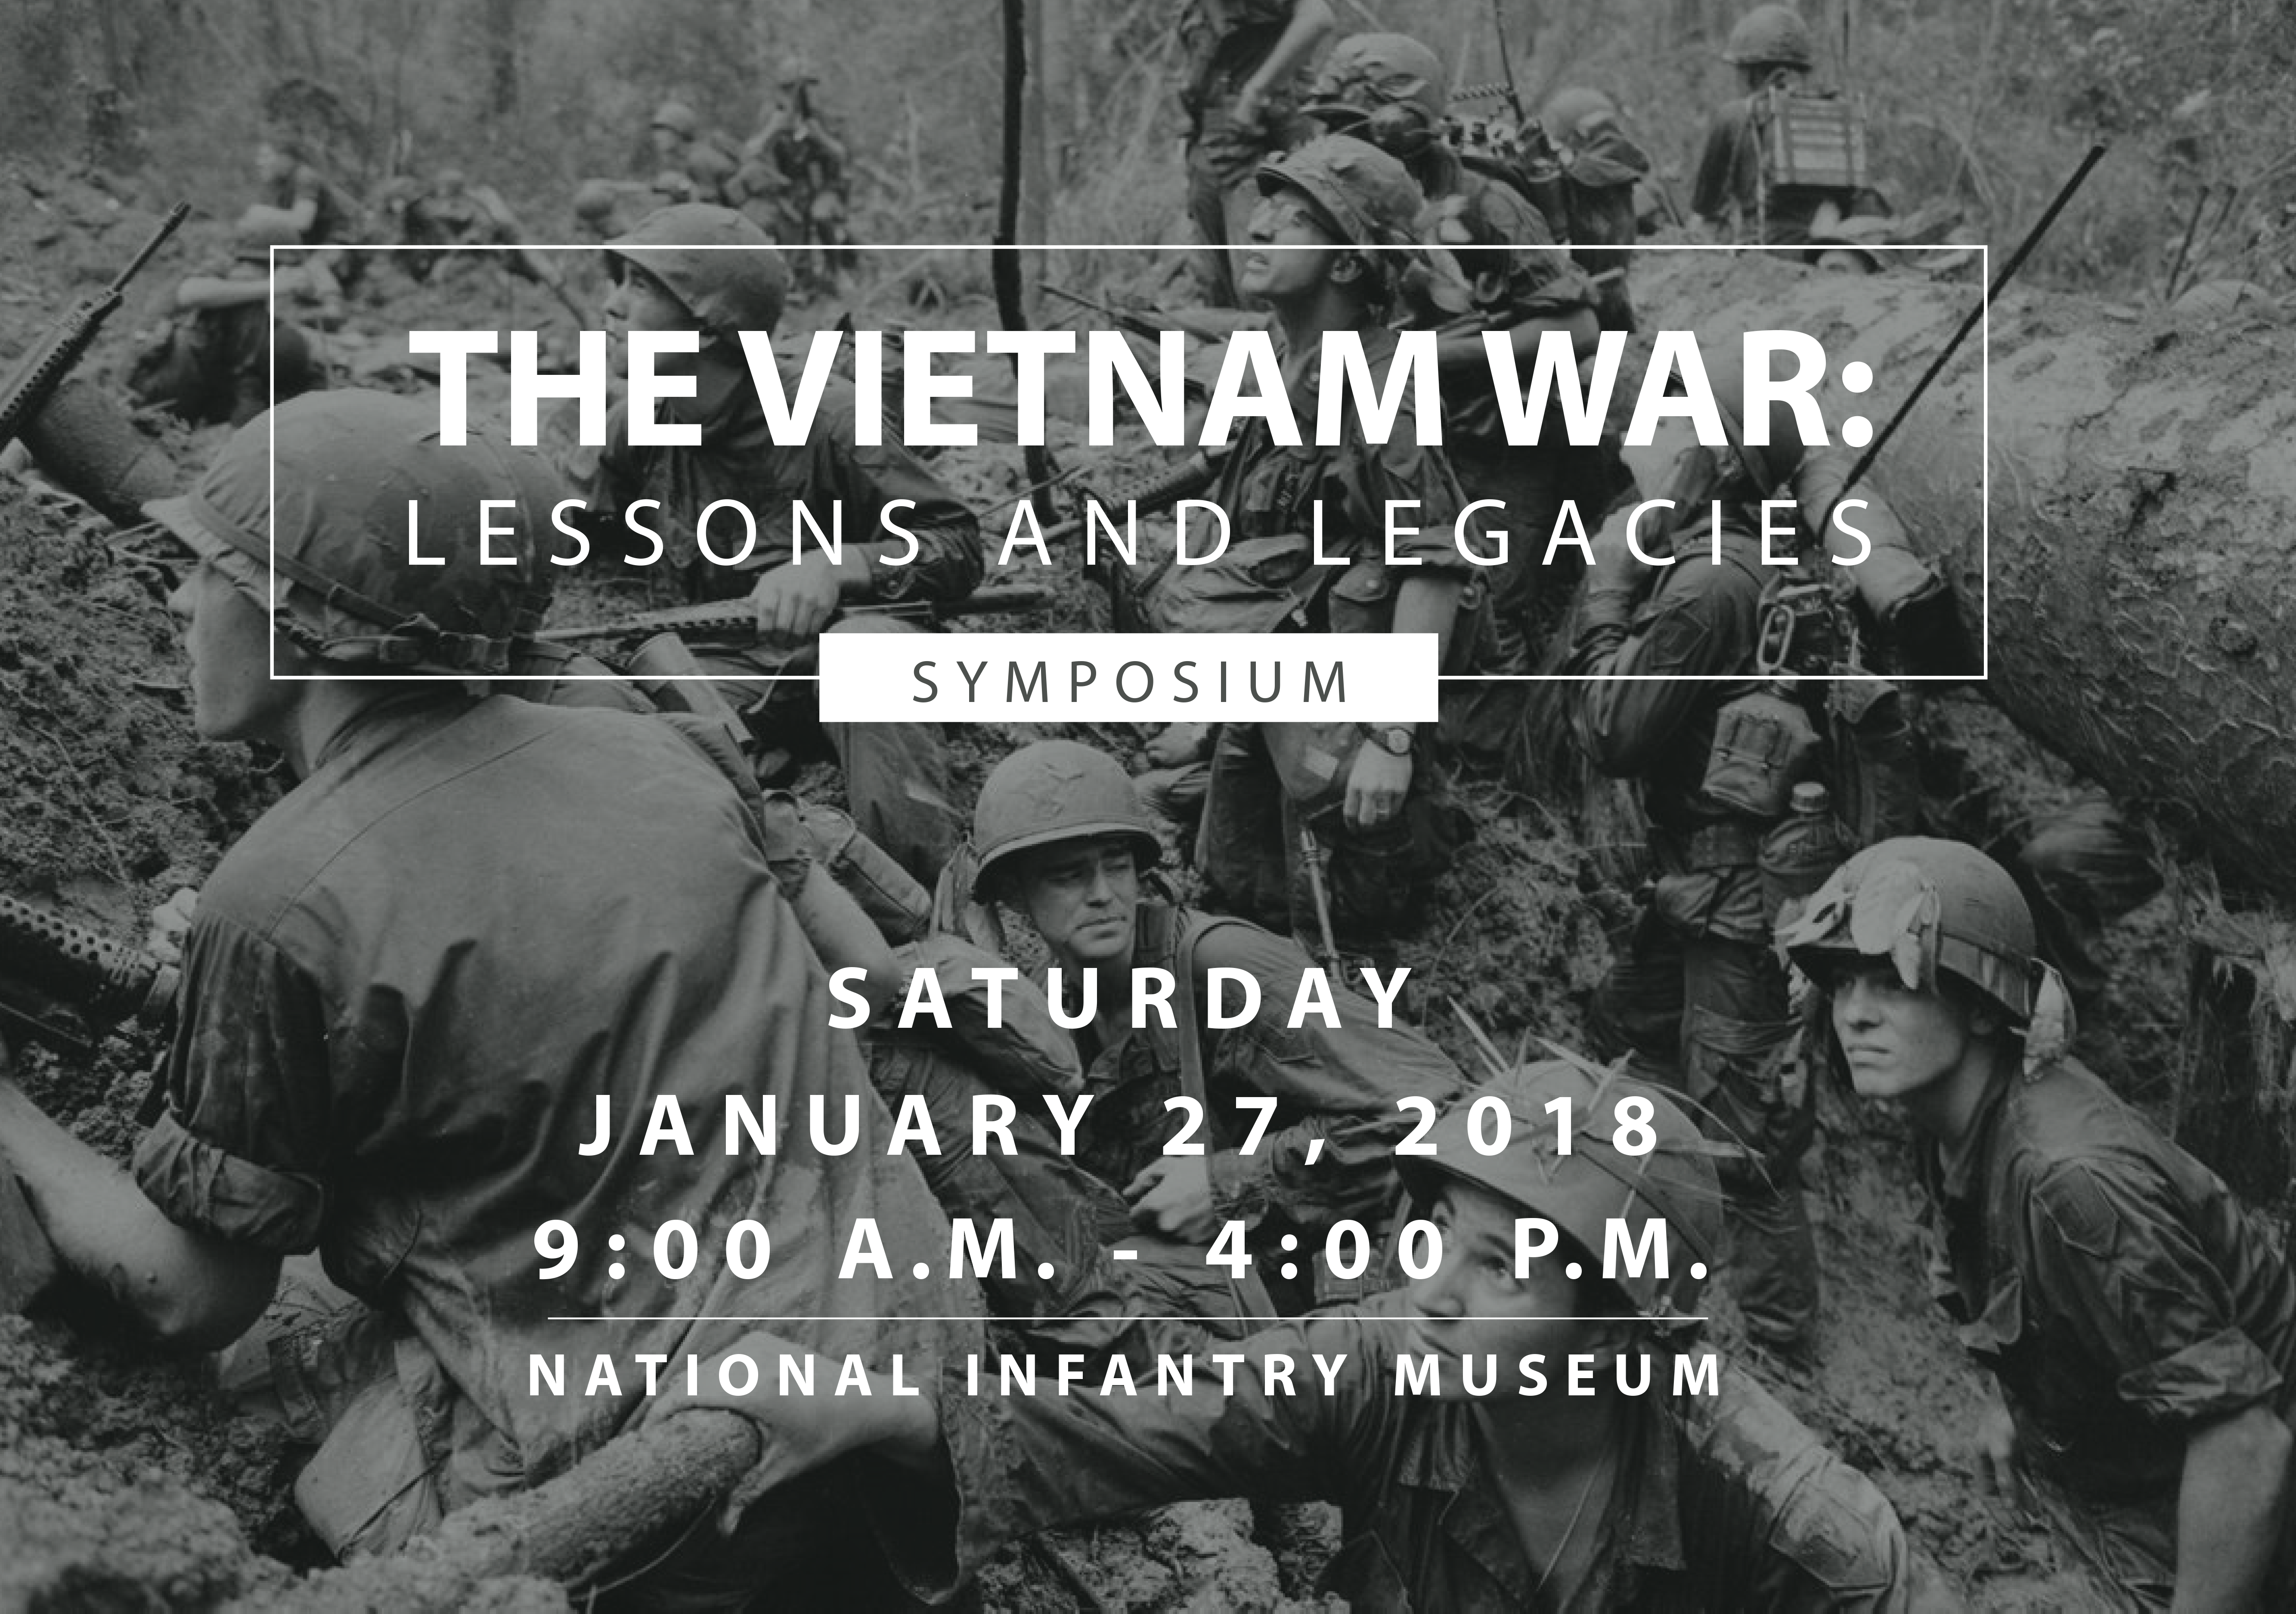 The Vietnam War: Lessons and Legacies Symposium